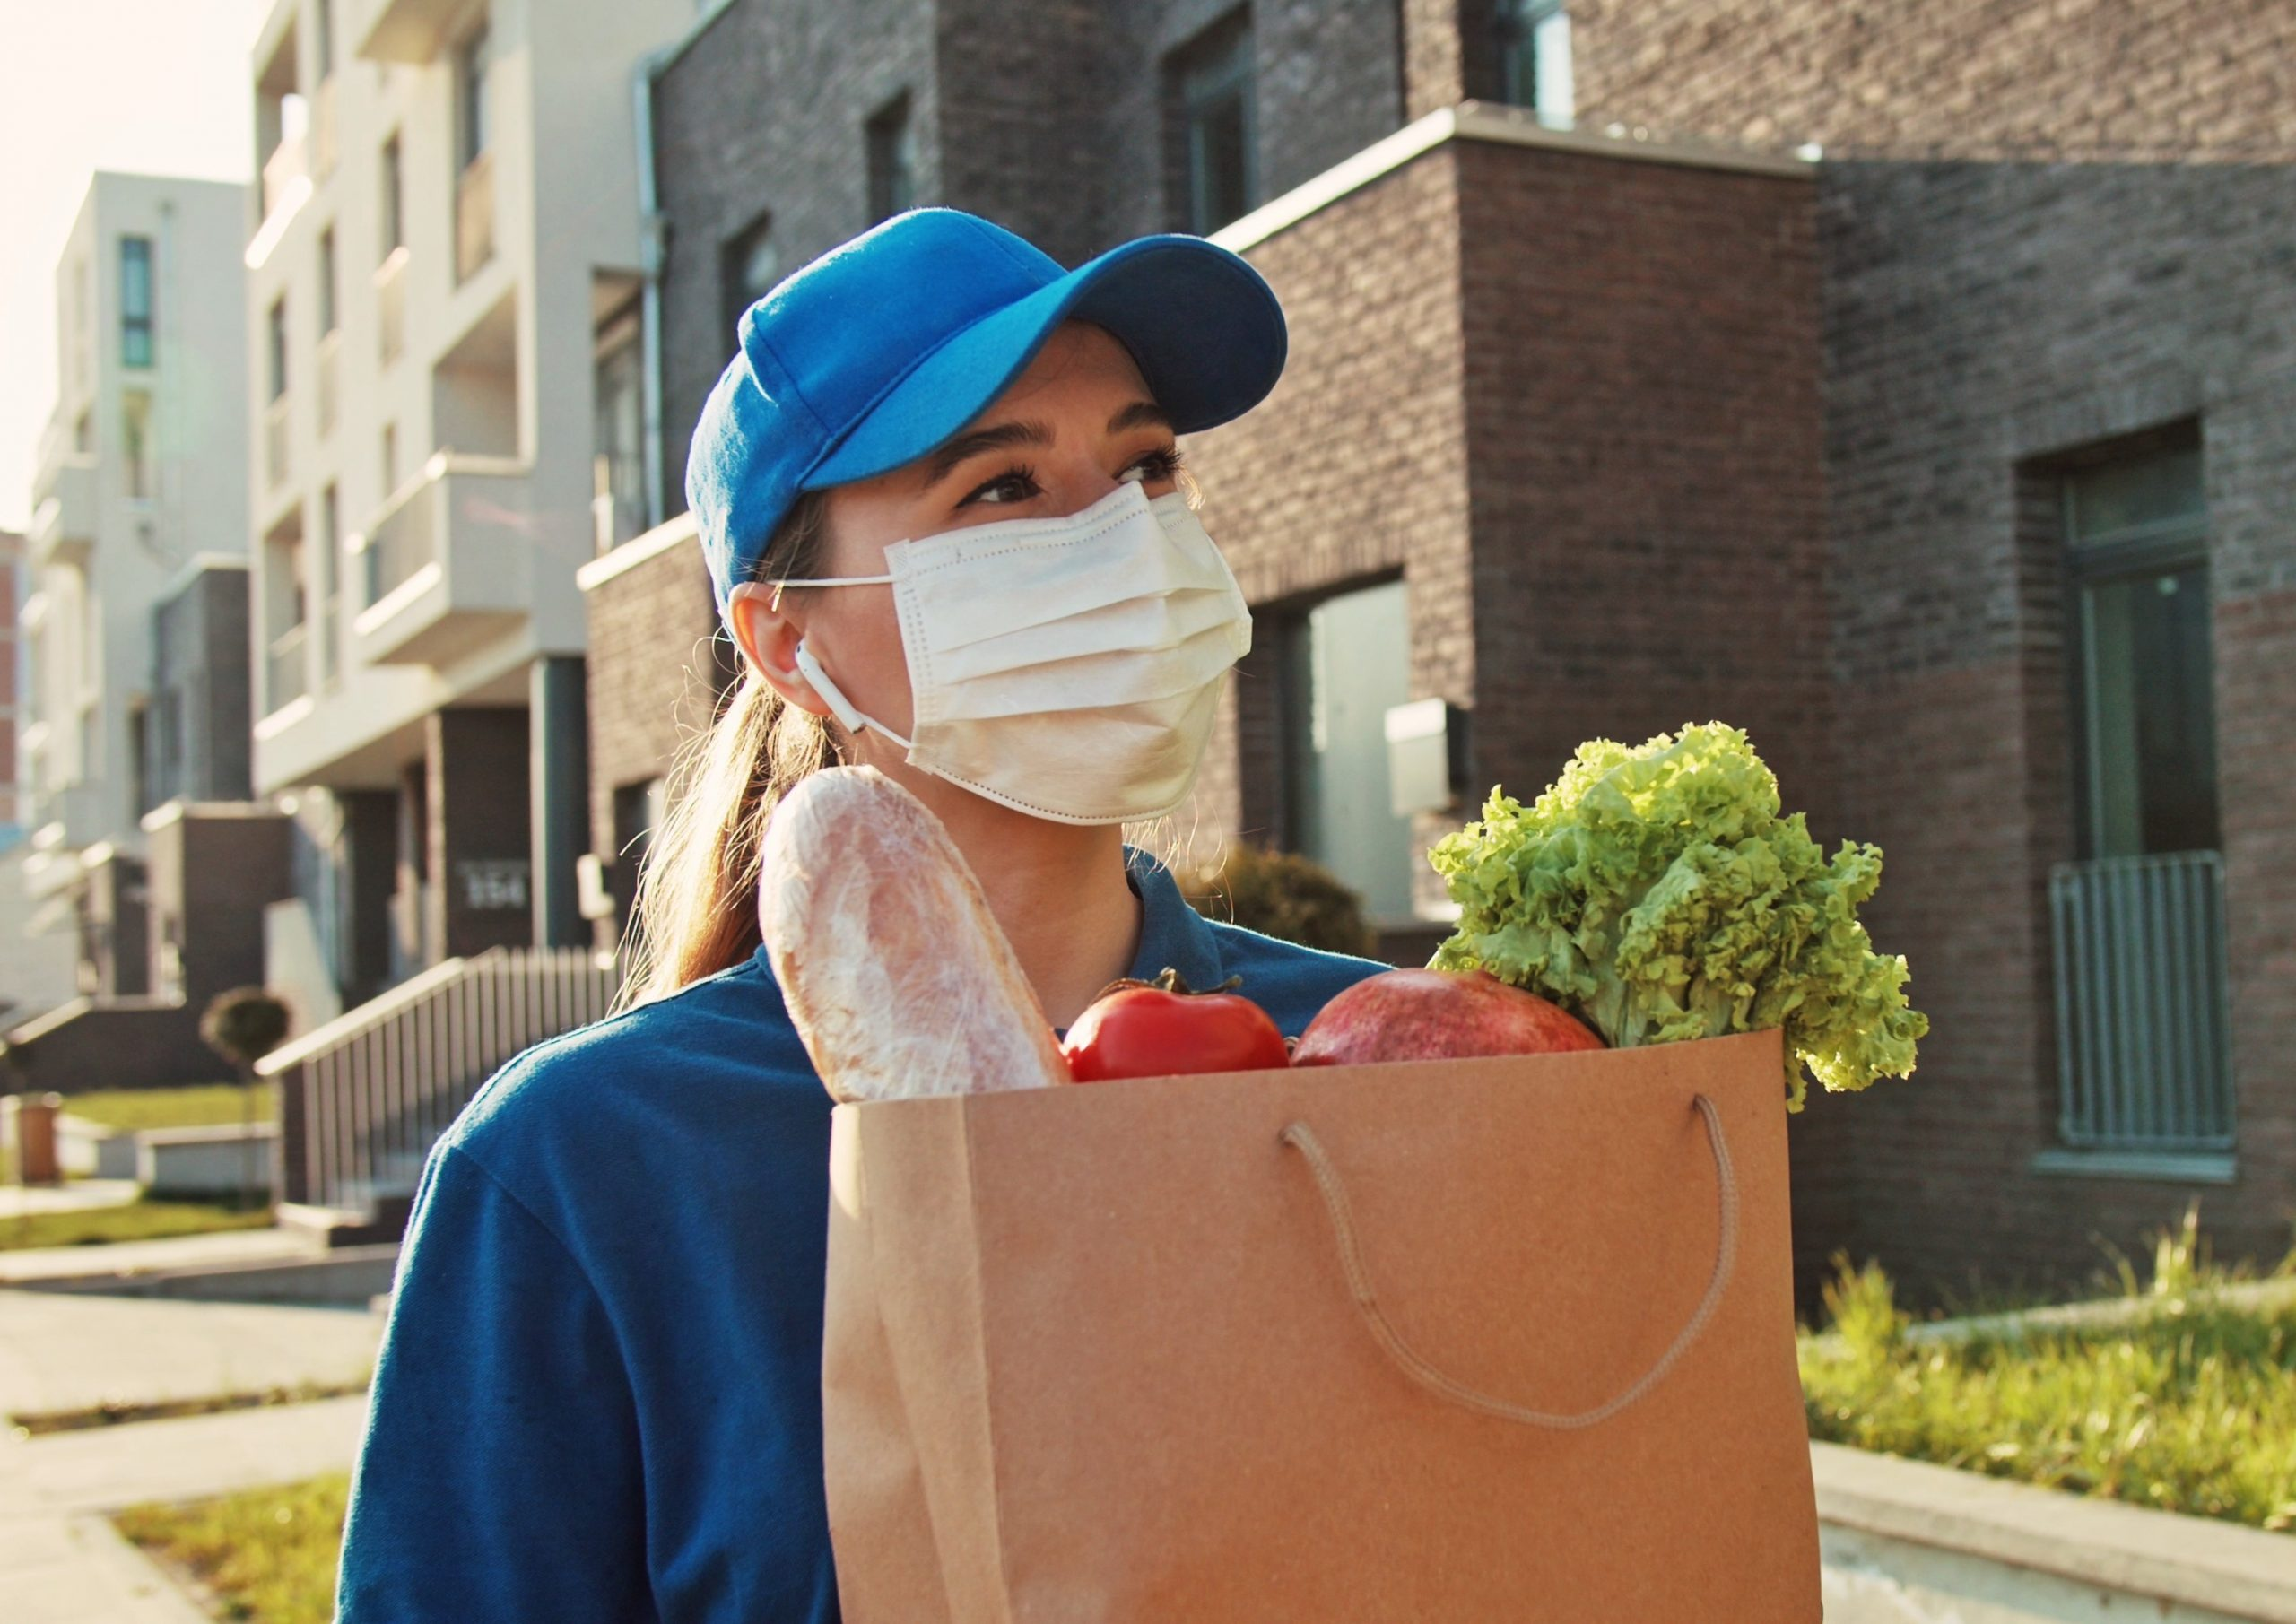 close-up-portrait-young-courier-woman-holding-food-craft-bag-modern-safety-food-delivery-service-a_t20_e9P792